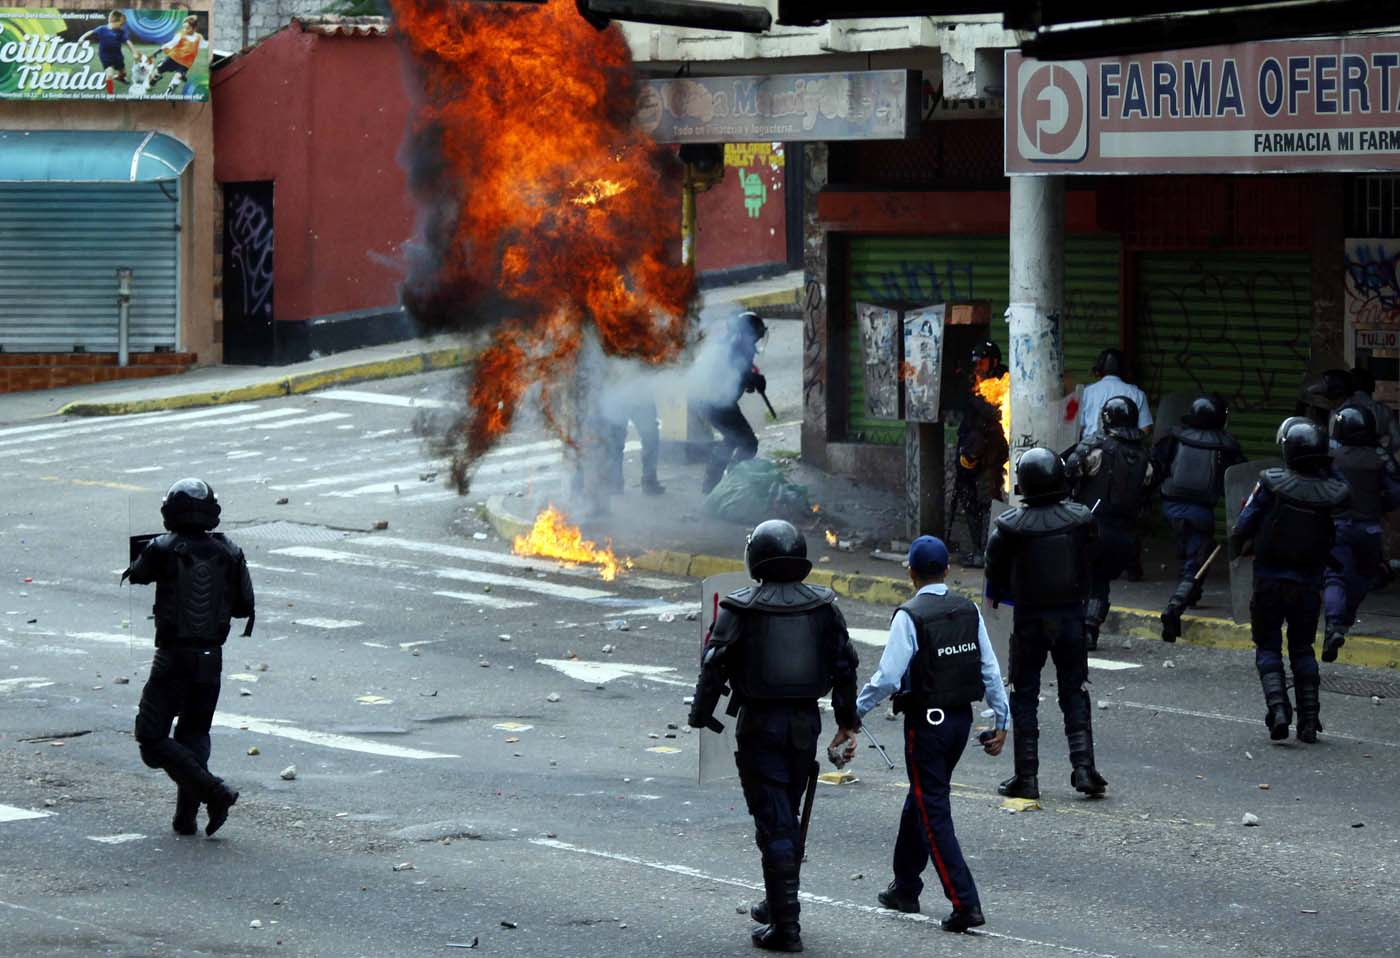 Opposition supporters clash with police during protests against unpopular leftist President Nicolas Maduro in San Cristobal, Venezuela April 19, 2017. REUTERS/Carlos Eduardo Ramirez